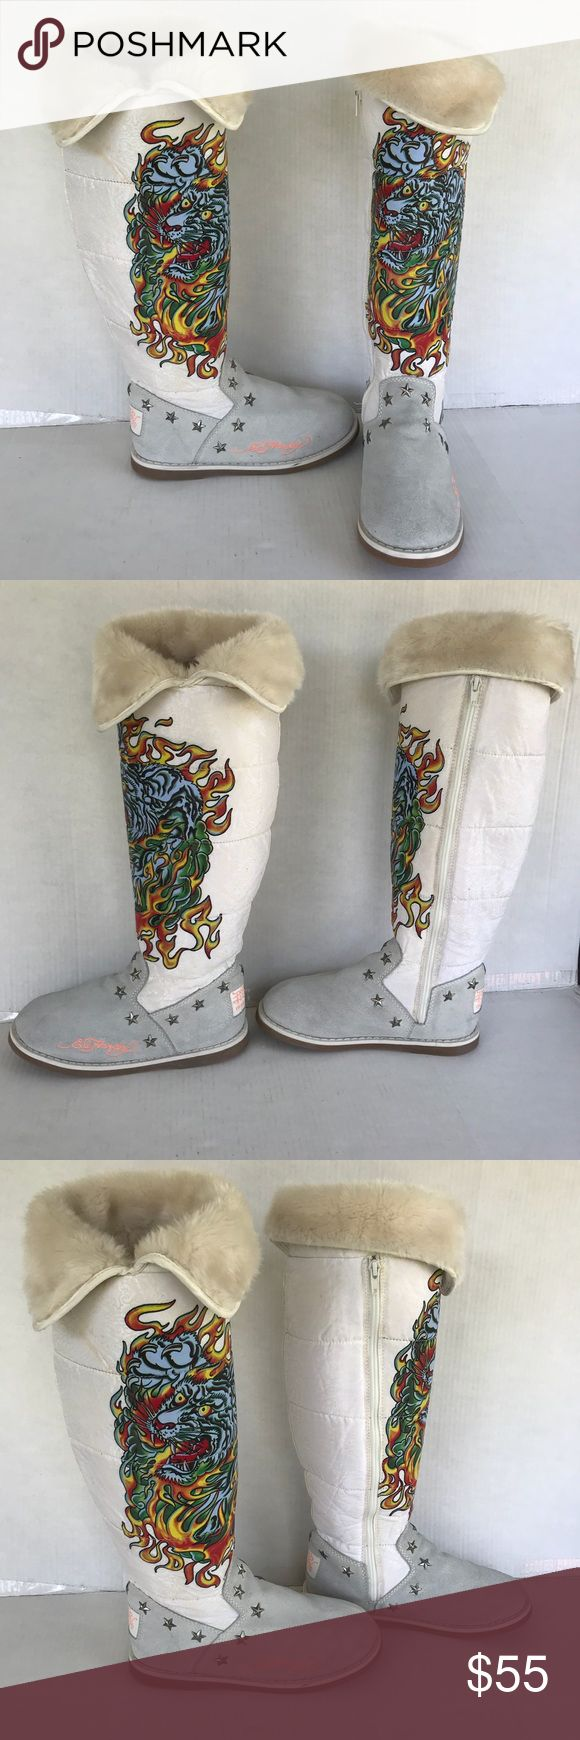 Don Ed Hardy Designs Knee High Boots Fur Lined Zip Comfortable knee high boots with signature art by Don and Ed Hardy Designs. They are very warm with inside zipper. Don & Ed Hardy Designs Shoes Winter & Rain Boots